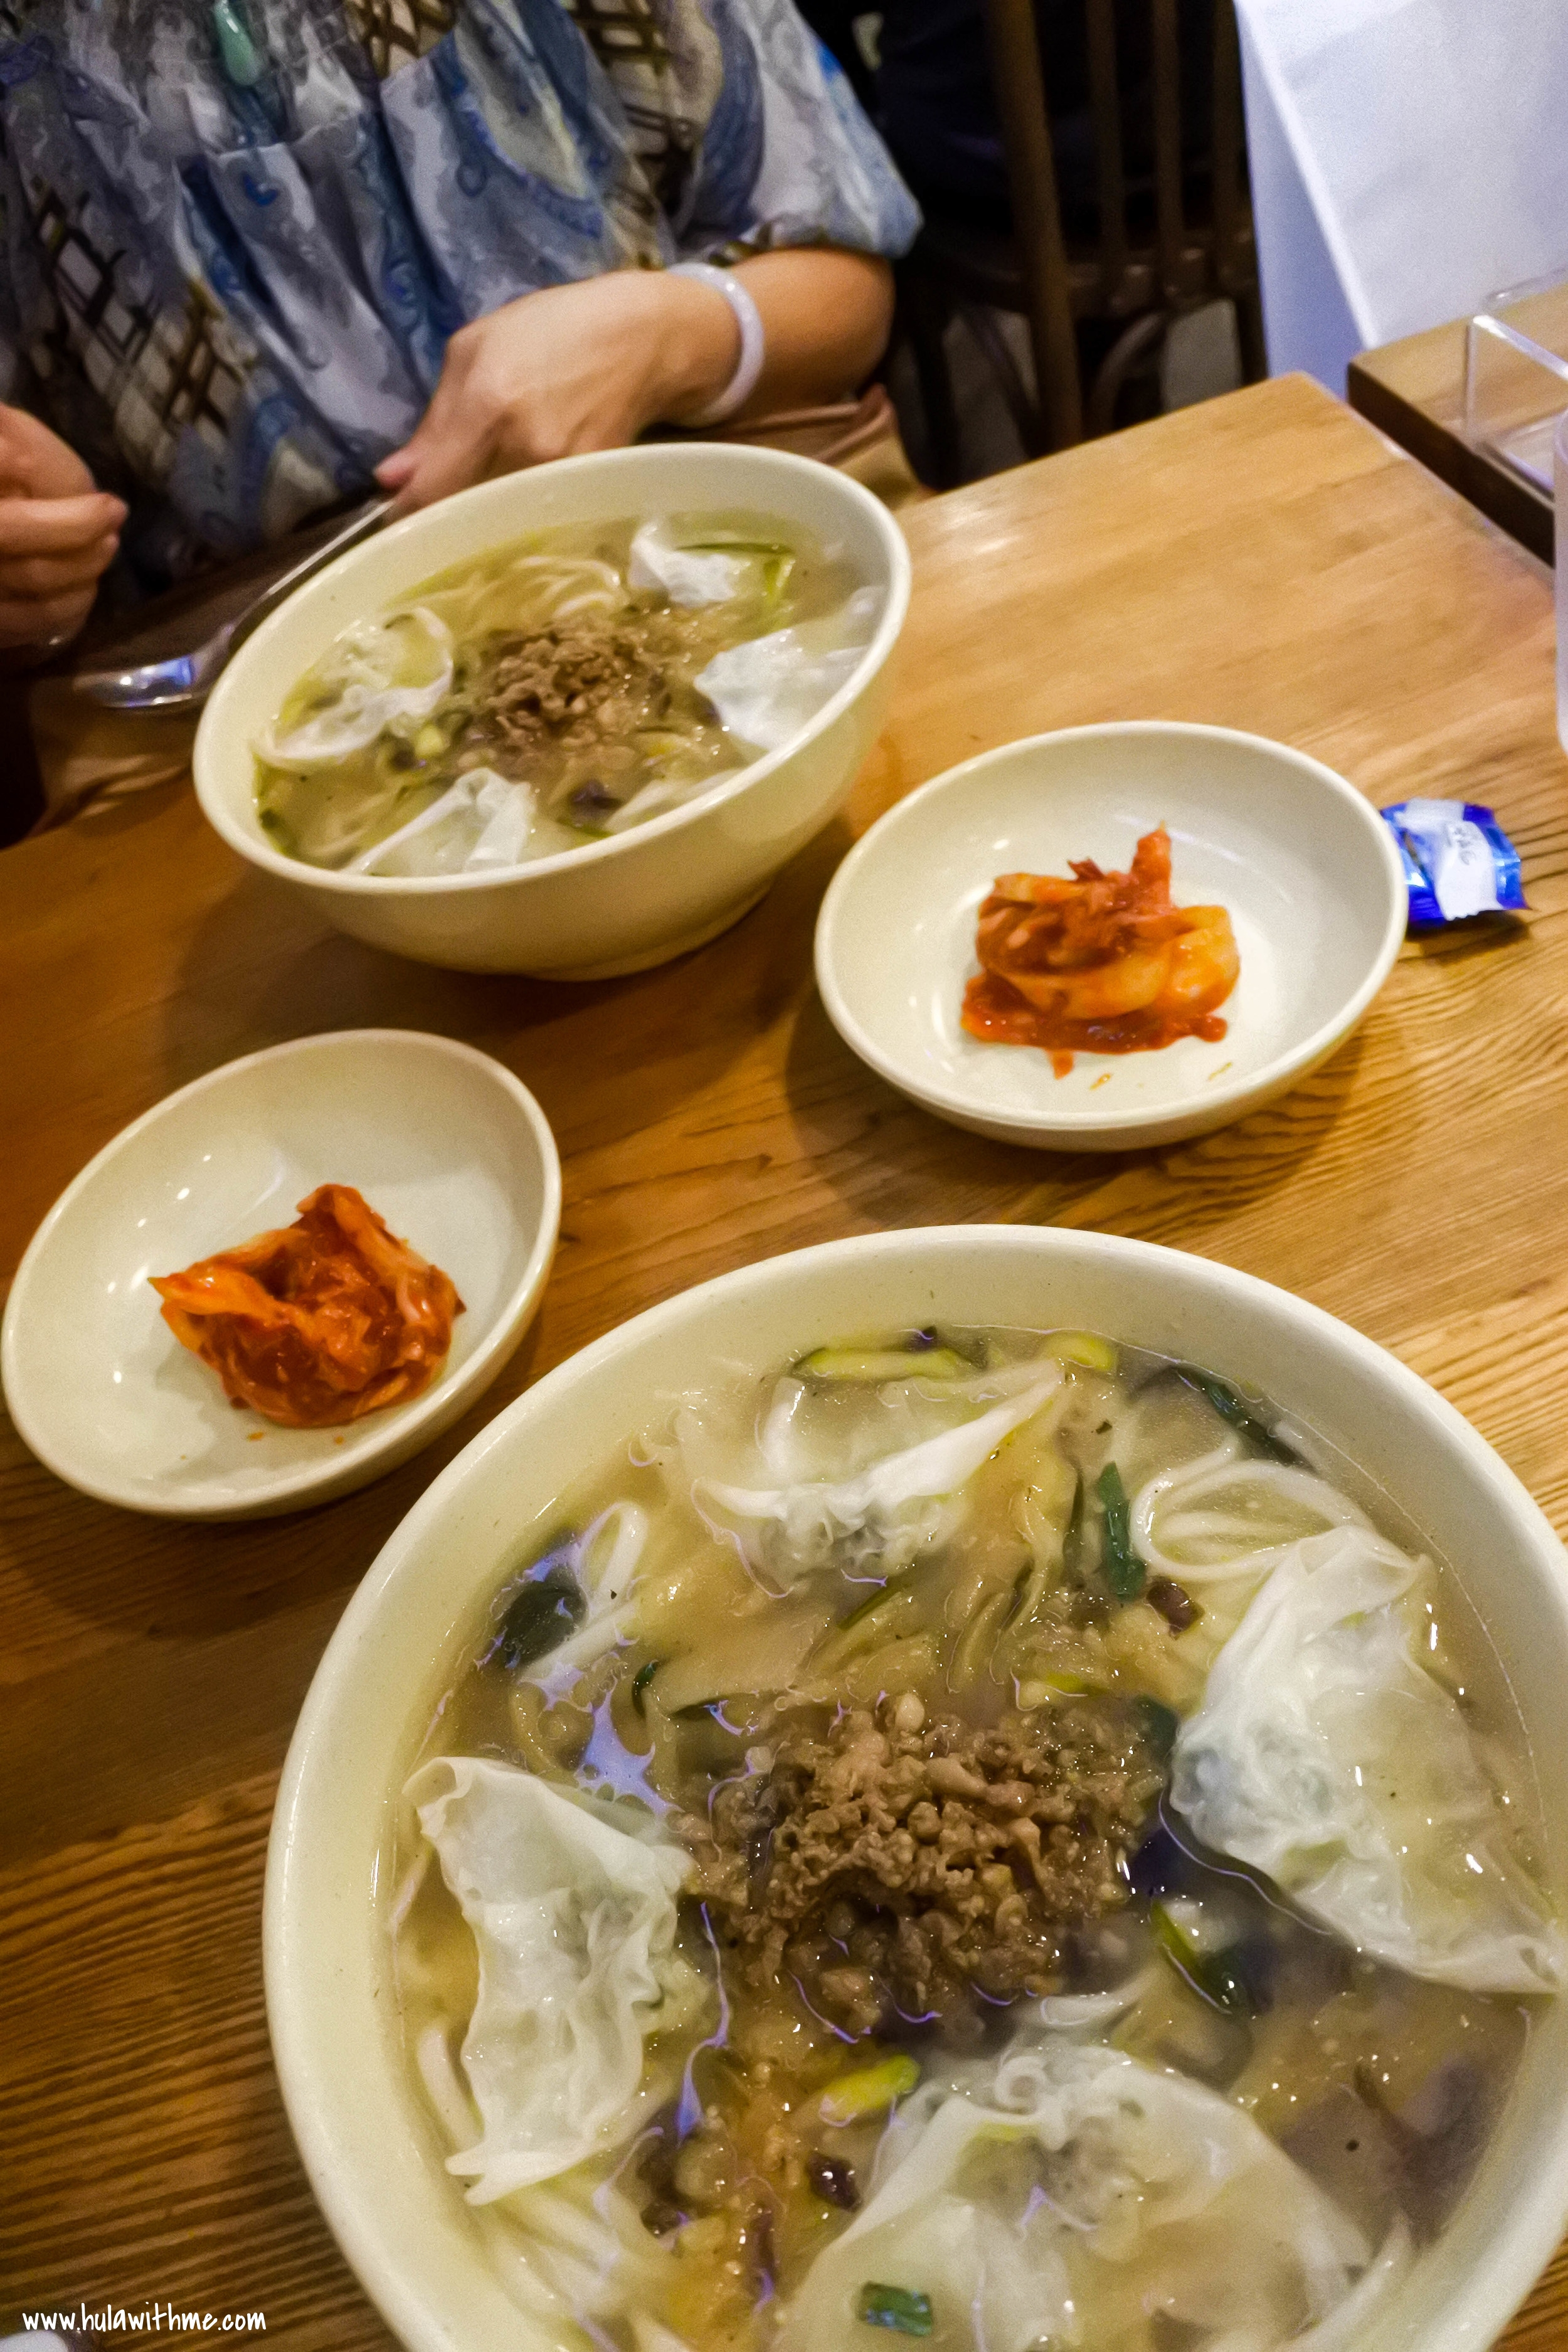 Each order comes with a small serving of kimchi.  Perfect compliment to the noodle dish.